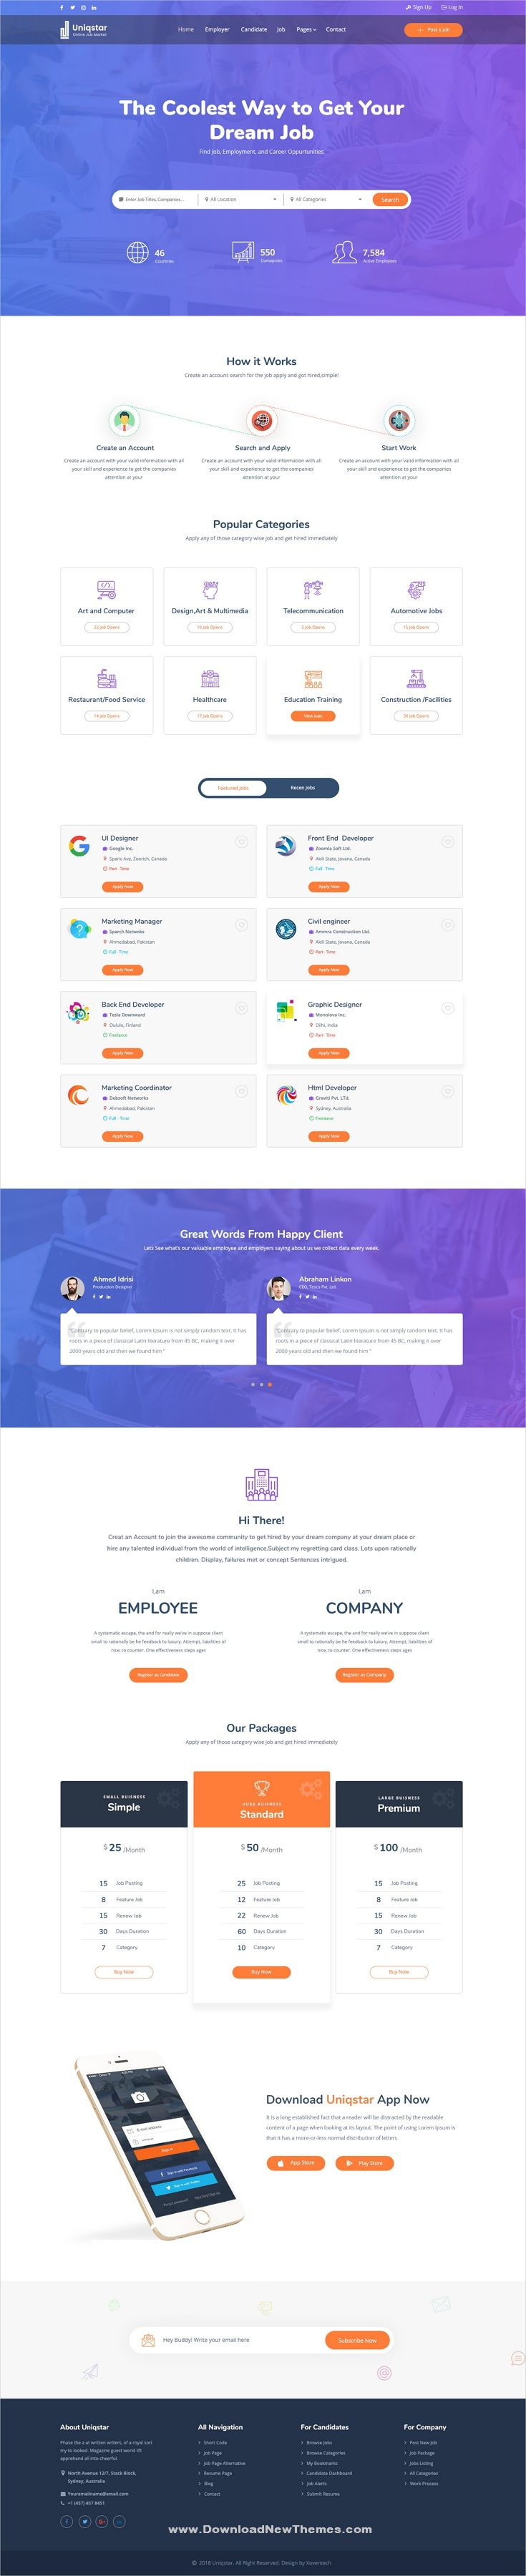 Uniqstar Is A Clean And Modern Design Psd Template For Job Board And Recruitment Agencies Professional Website With Jobs Companies Candidates Listing Pa